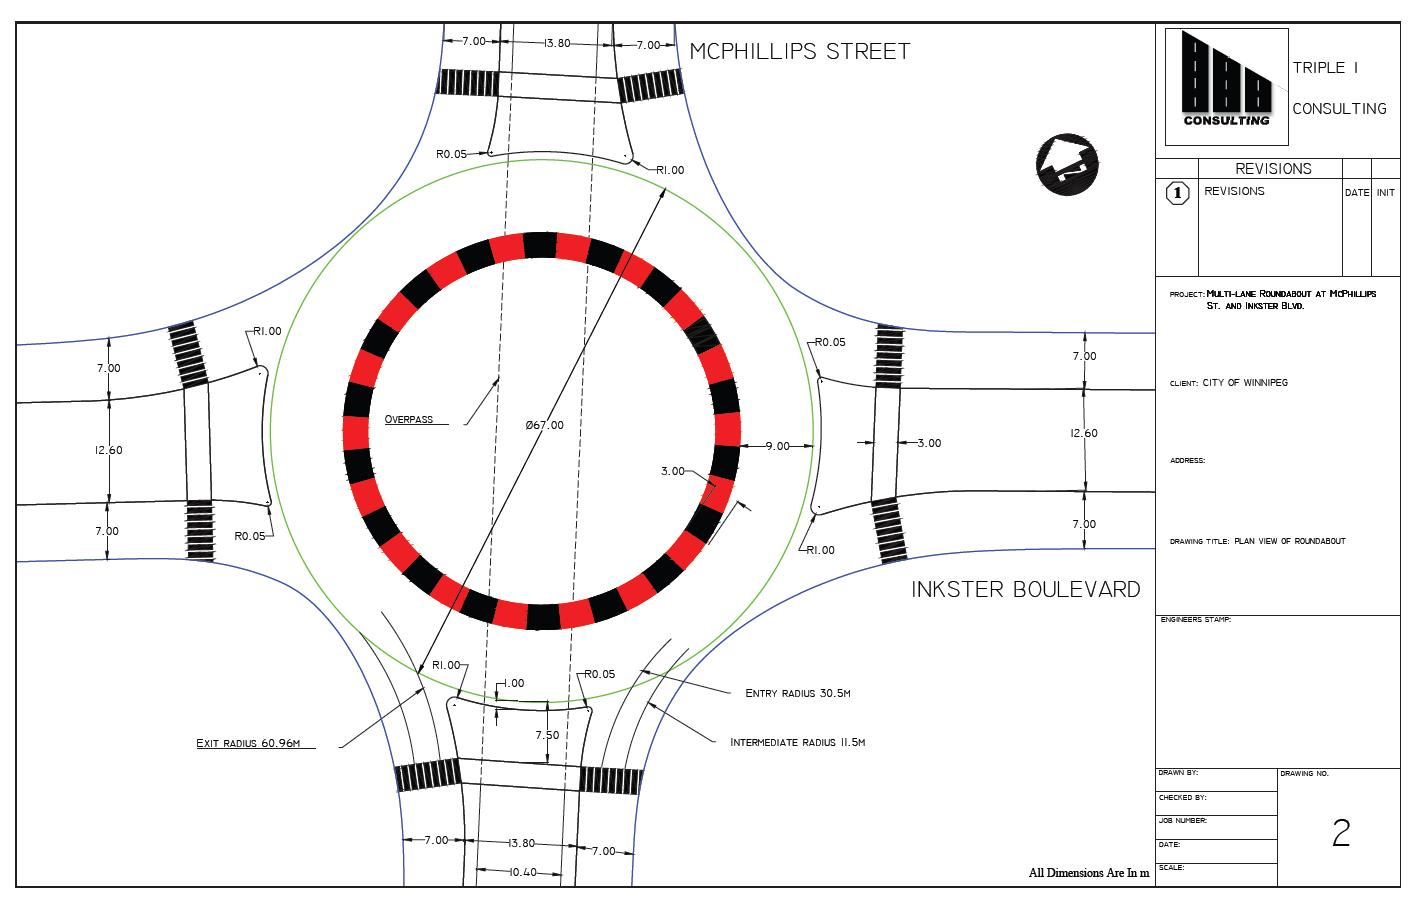 Winnipeg traffic confusion sorted with roundabout